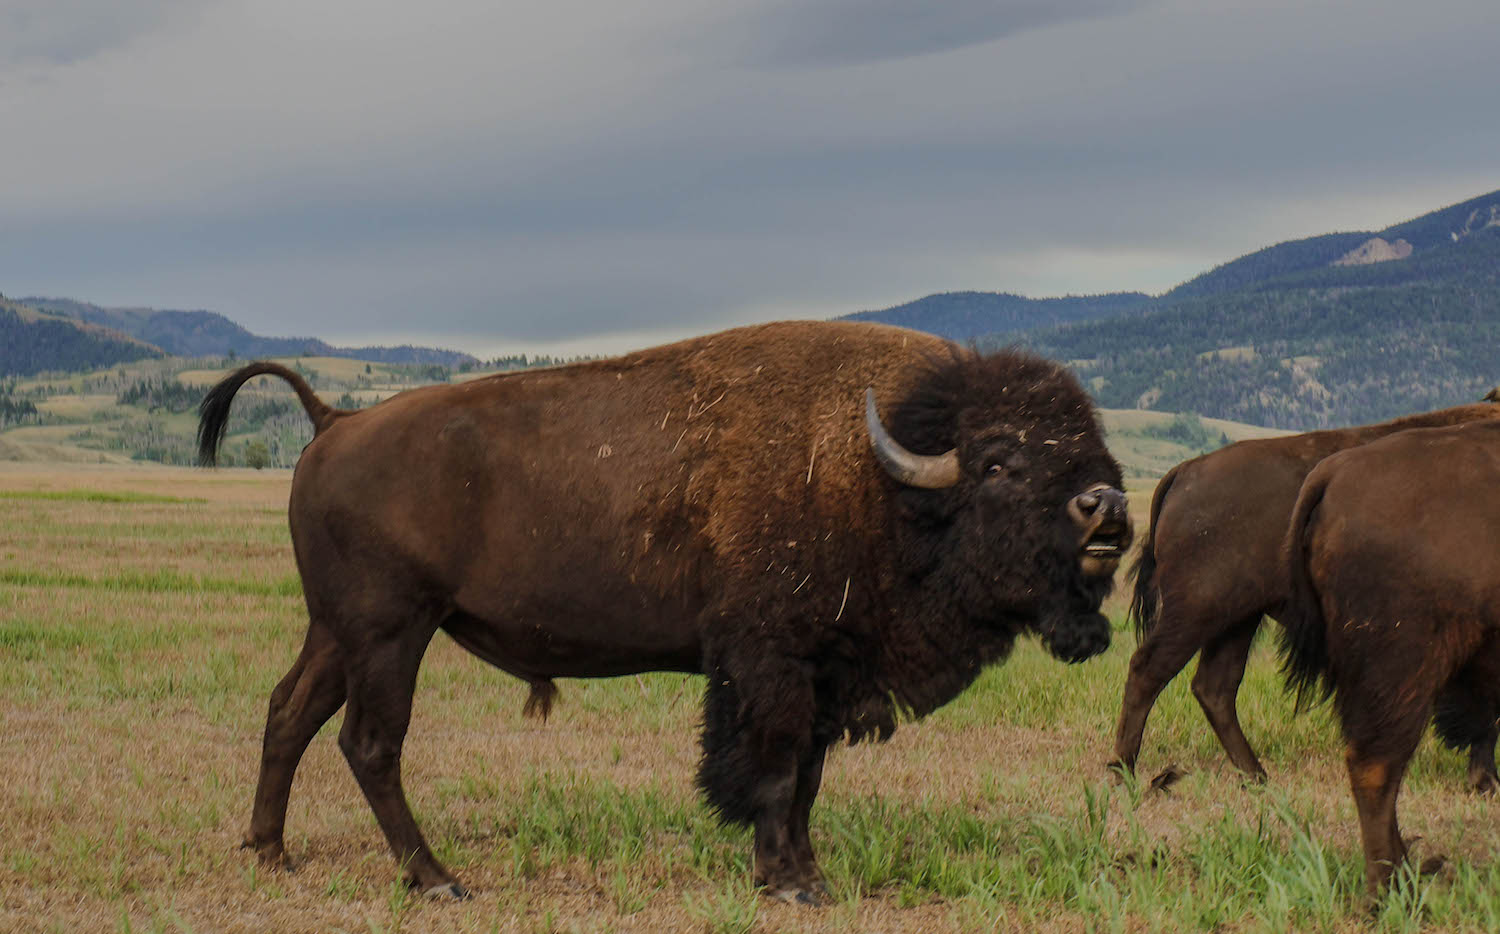 These incredible creatures were just meters away from us. You're supposed to stay 25 yards away from bison but we felt safe in our car.